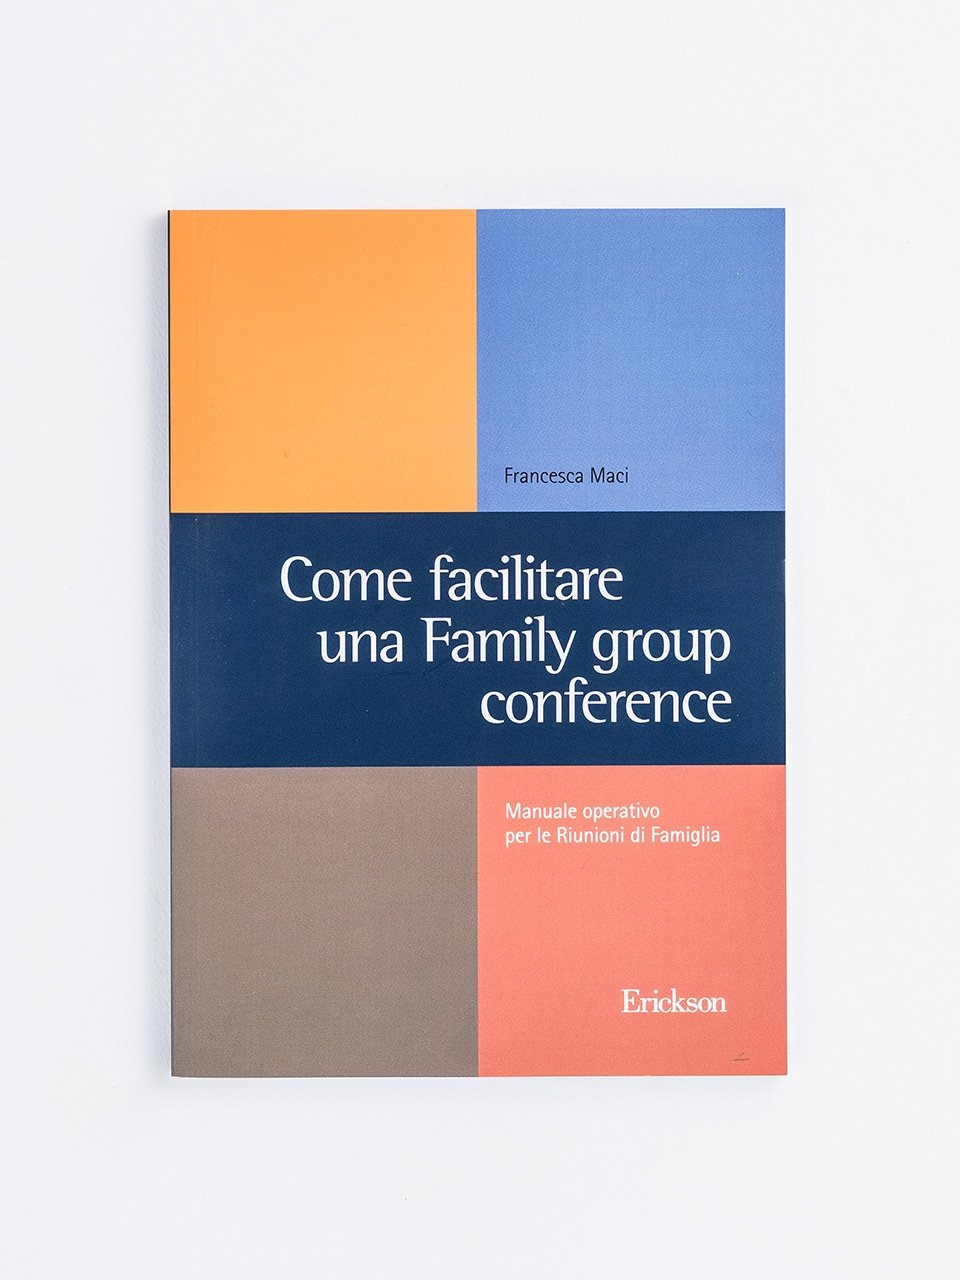 Come facilitare una Family group conference - Il piacere delle donne - Libri - Erickson